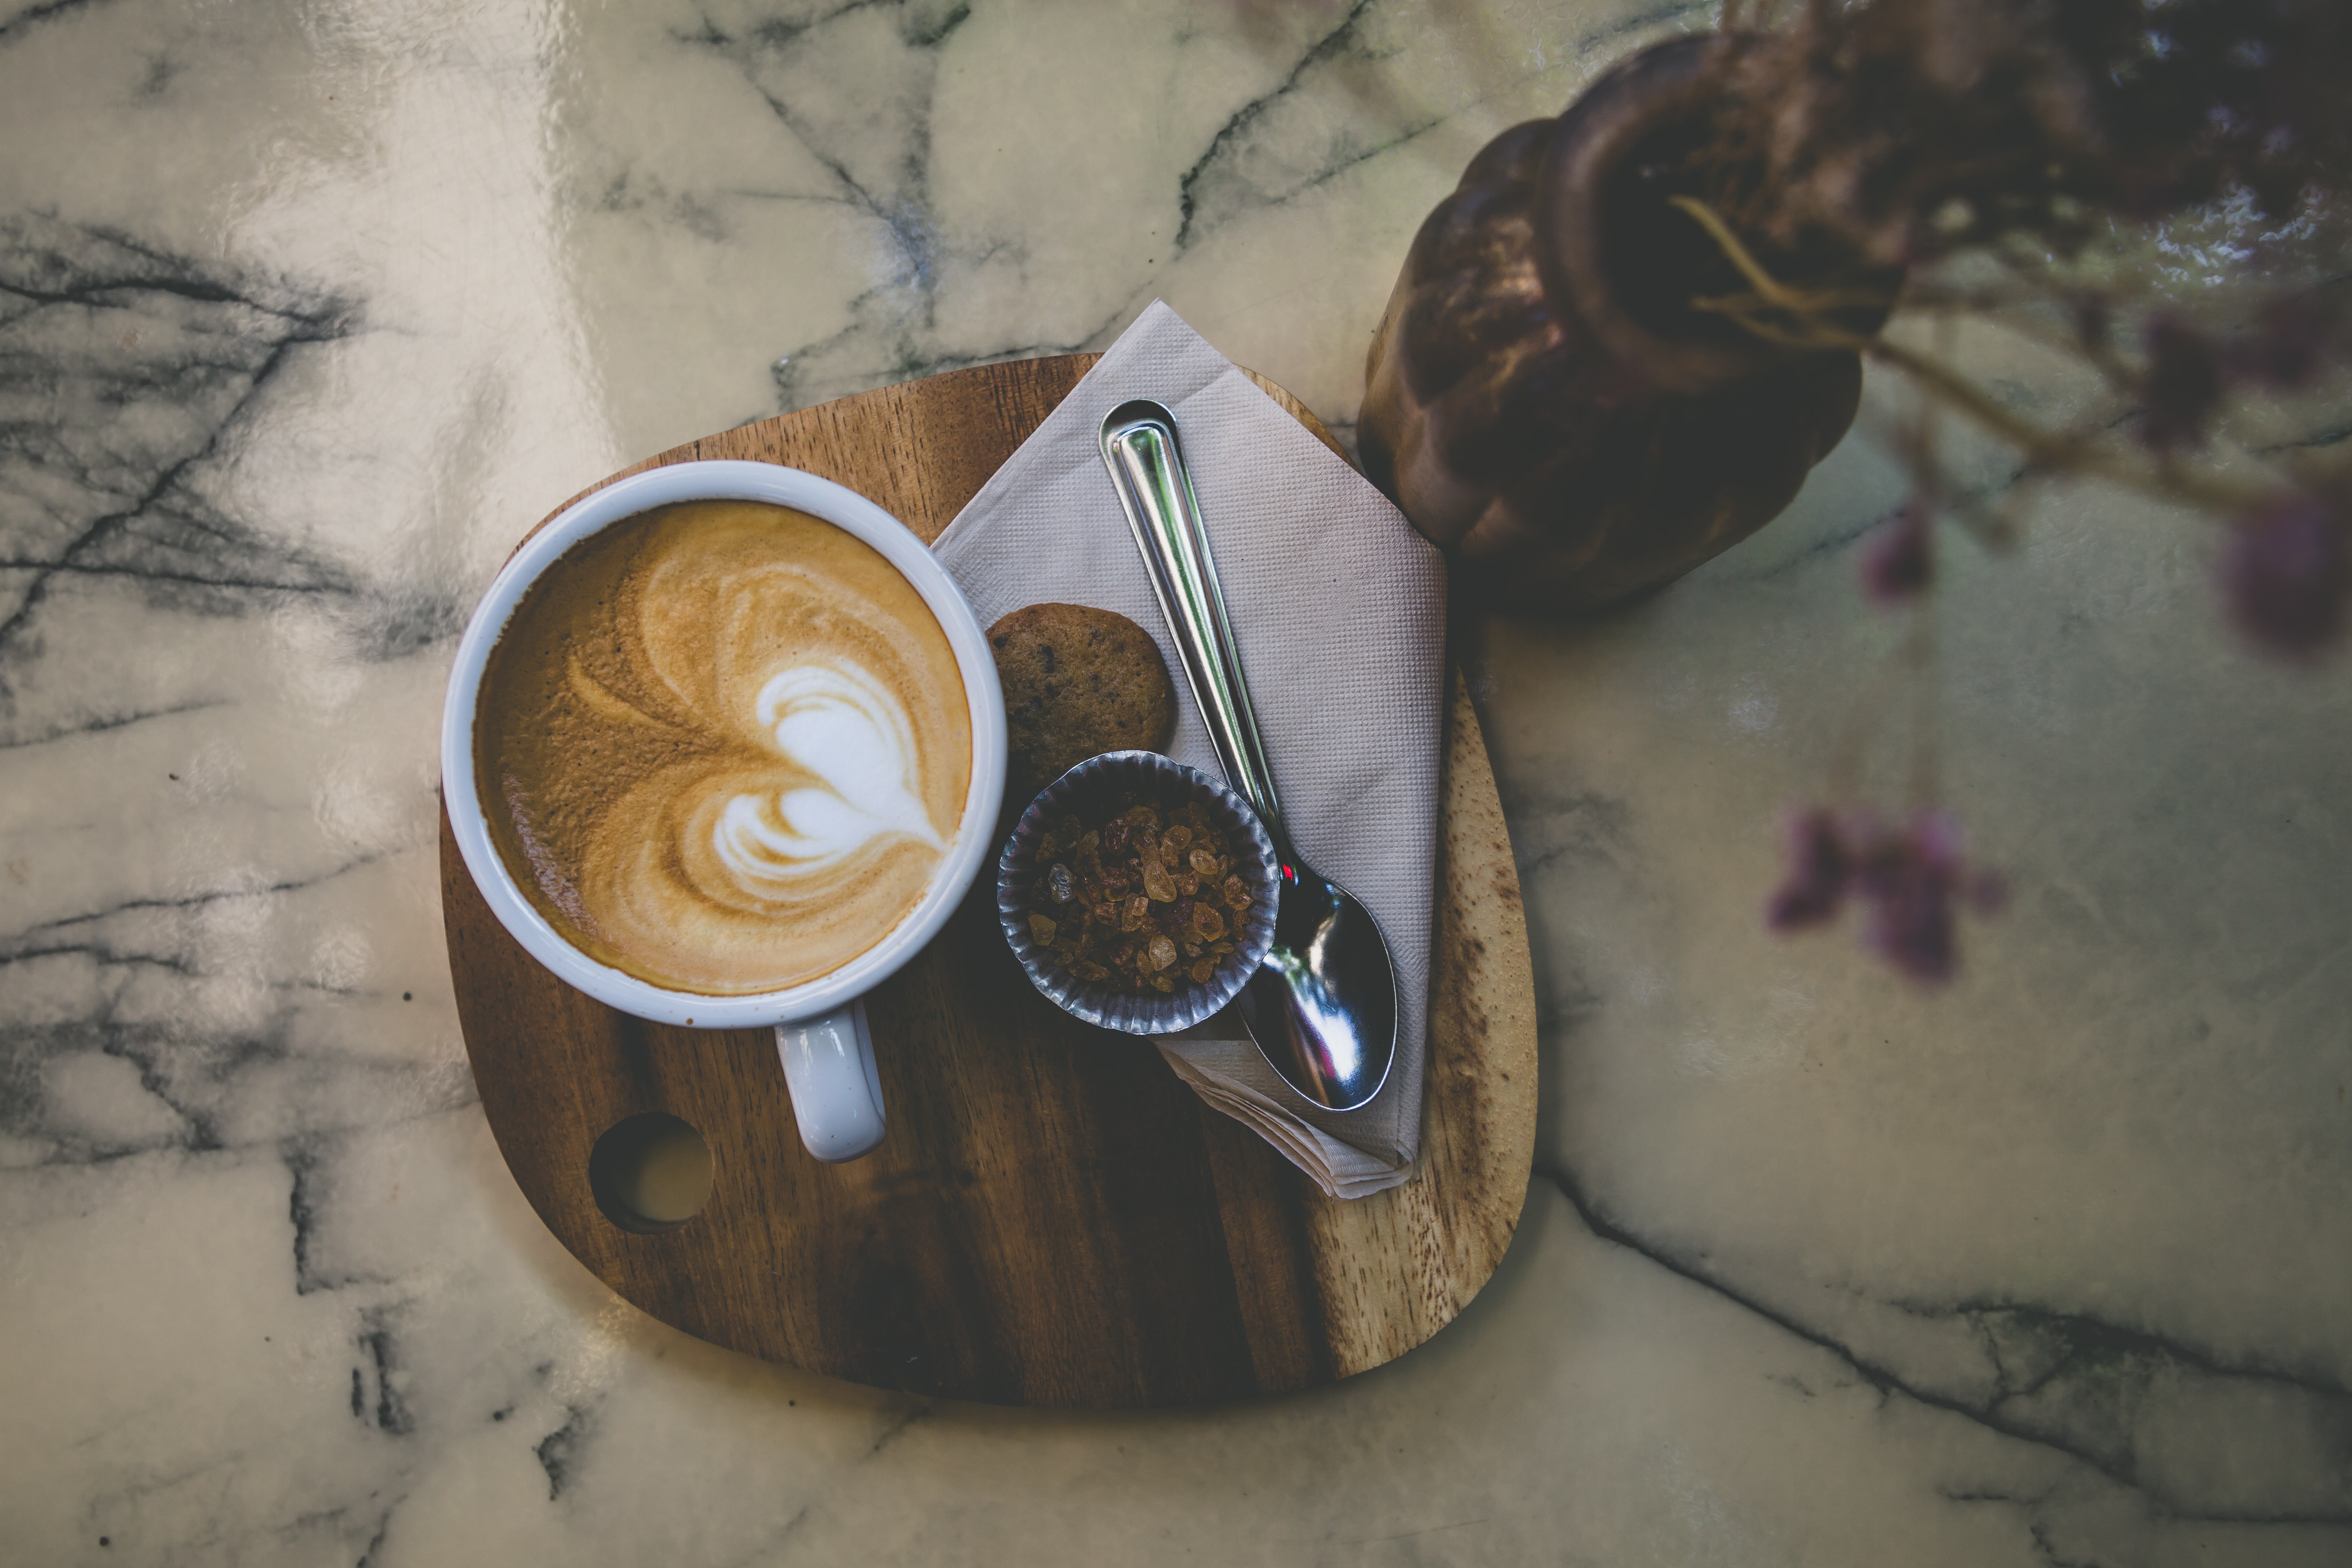 spoon near coffee cup and brown vase